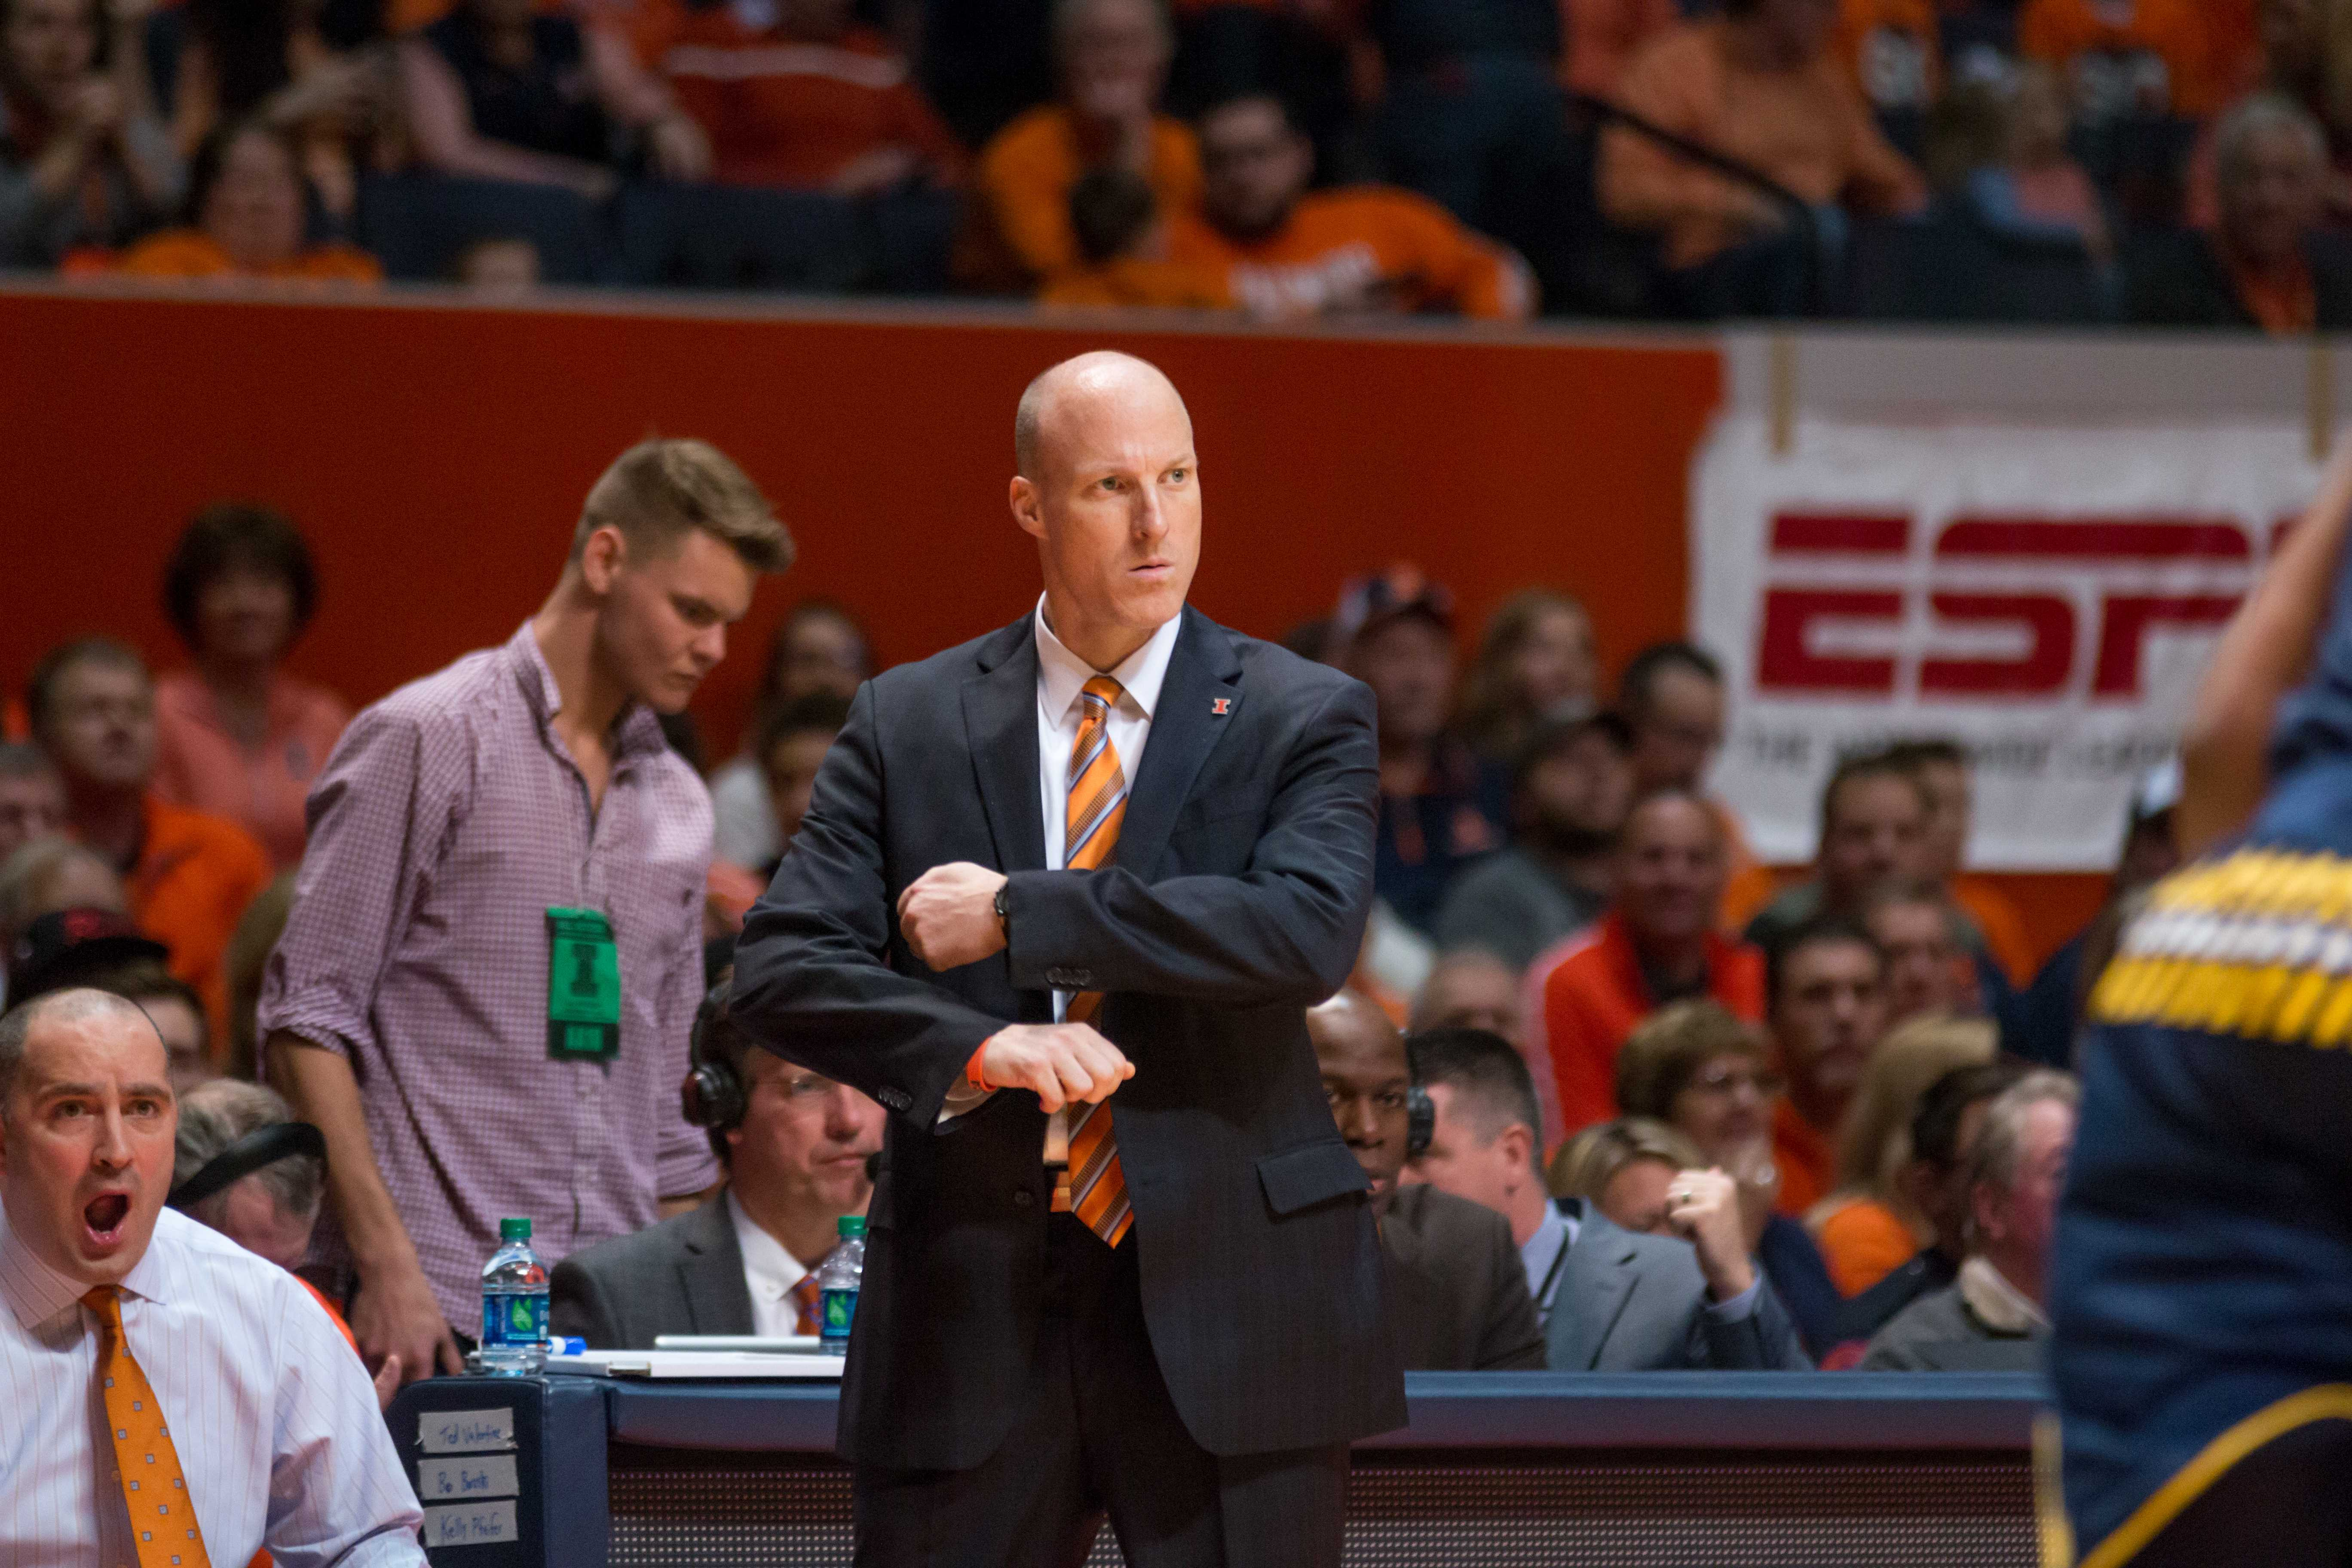 John Groce patrolling the sideline during Illinois' 78-68 loss to Michigan at State Farm Center on Wednesday. Groce's team fell to 0-2 in Big Ten play after losing to Ohio State on Sunday.